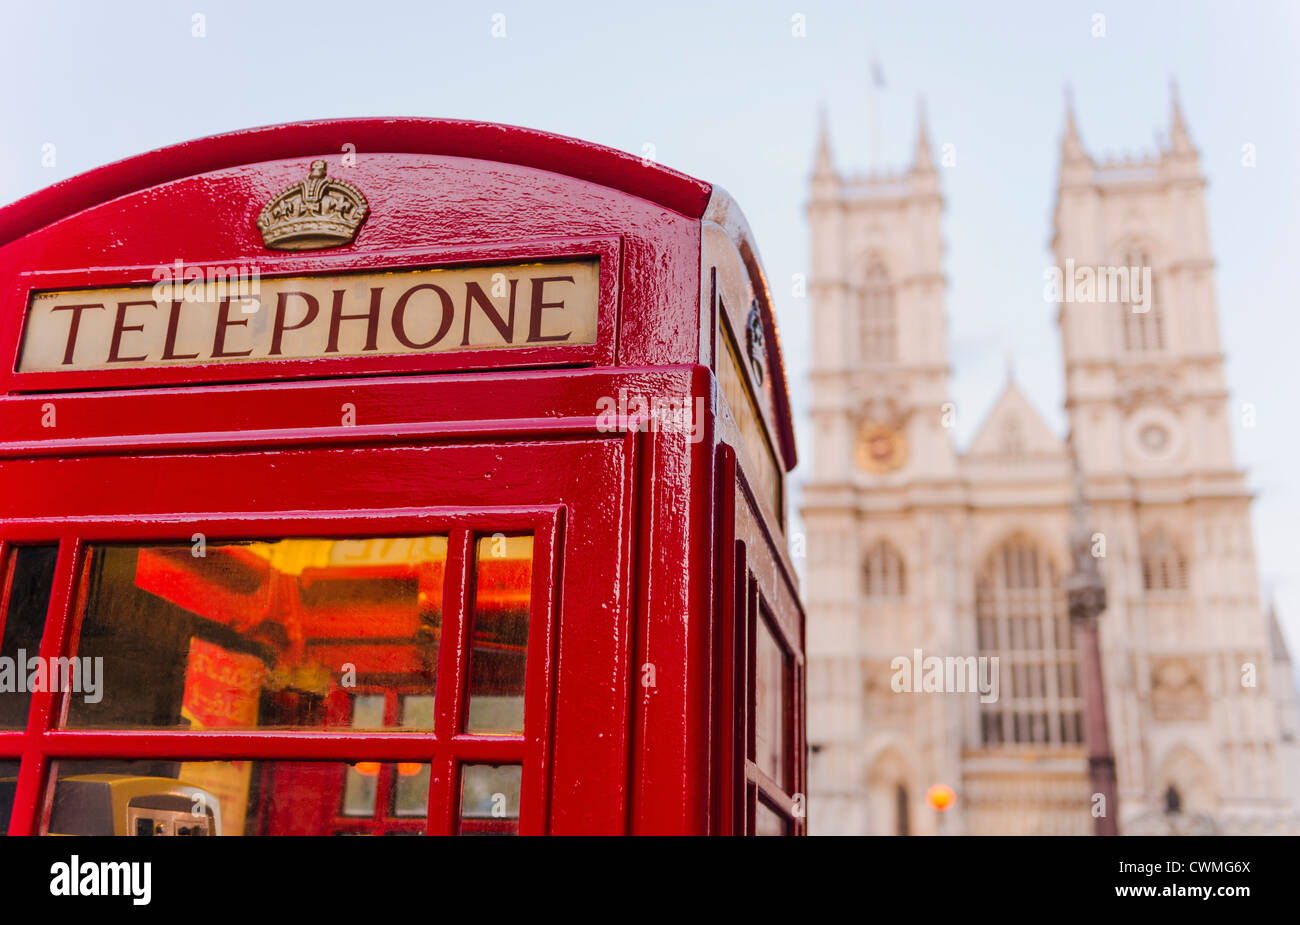 UK, London, Phone booth with Westminster Abbey behind - Stock Image